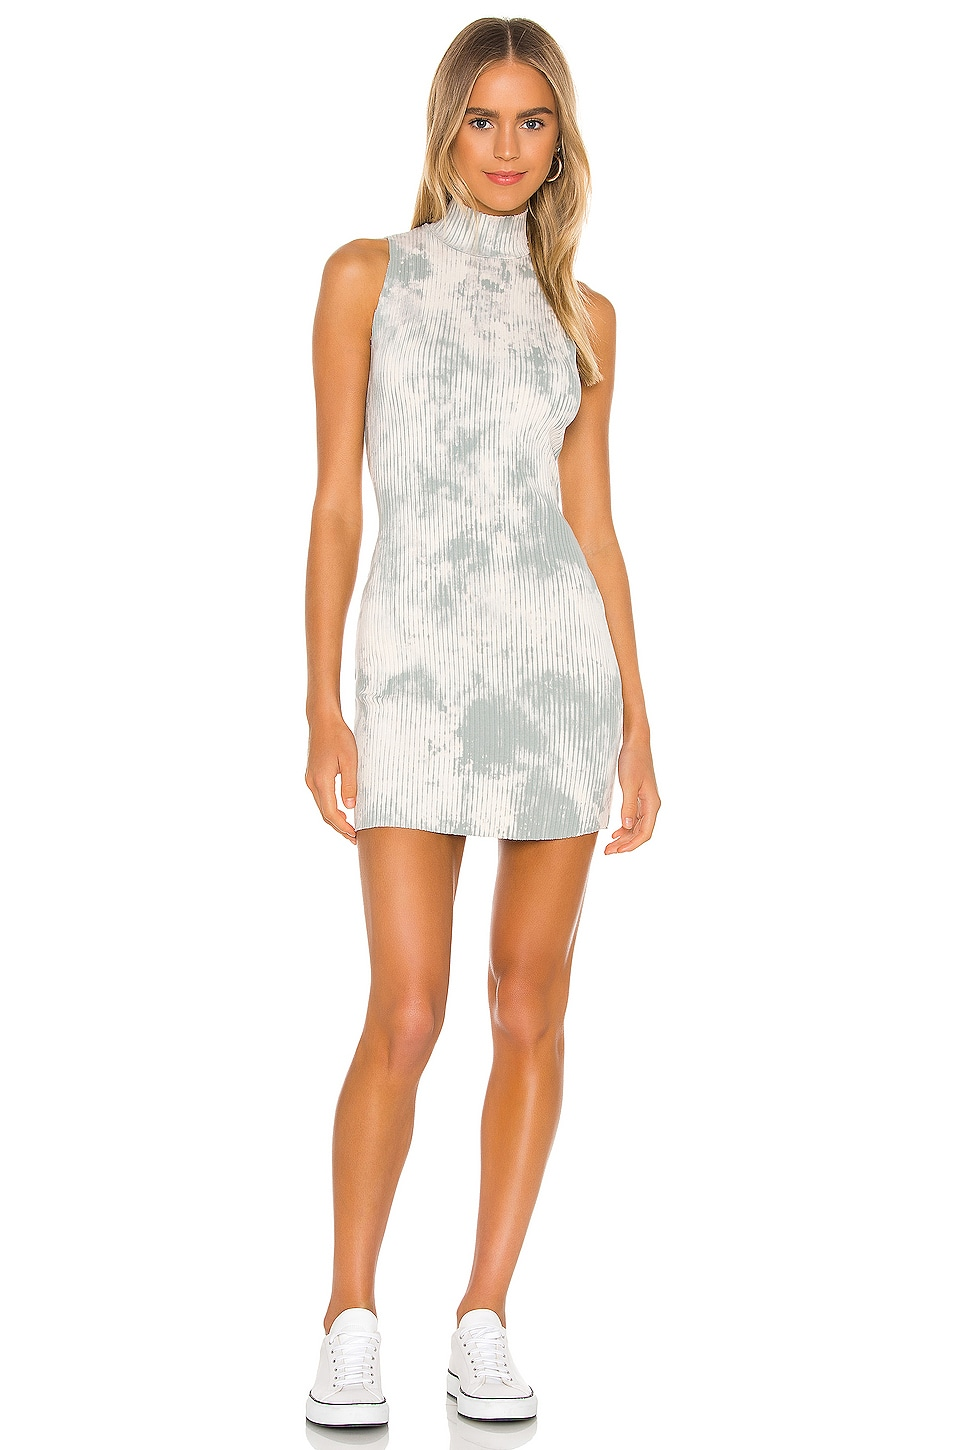 x REVOLVE Ibiza Racerback Dress XO             COTTON CITIZEN                                                                                                       CA$ 224.67 9